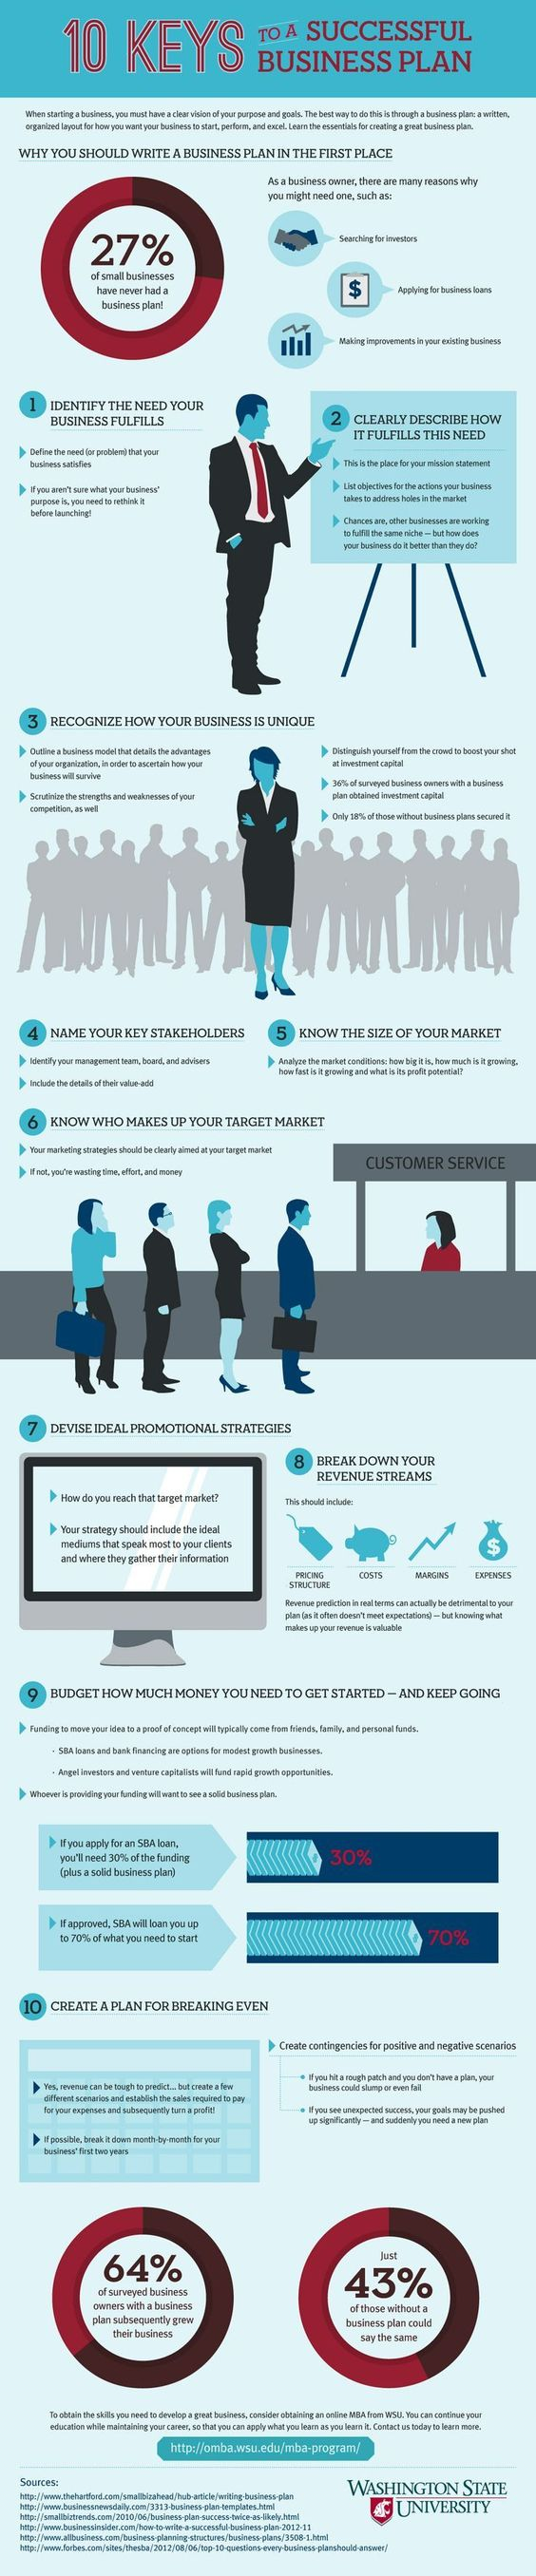 10 keys to a successful #business plan - #infographic Small business success tips #success